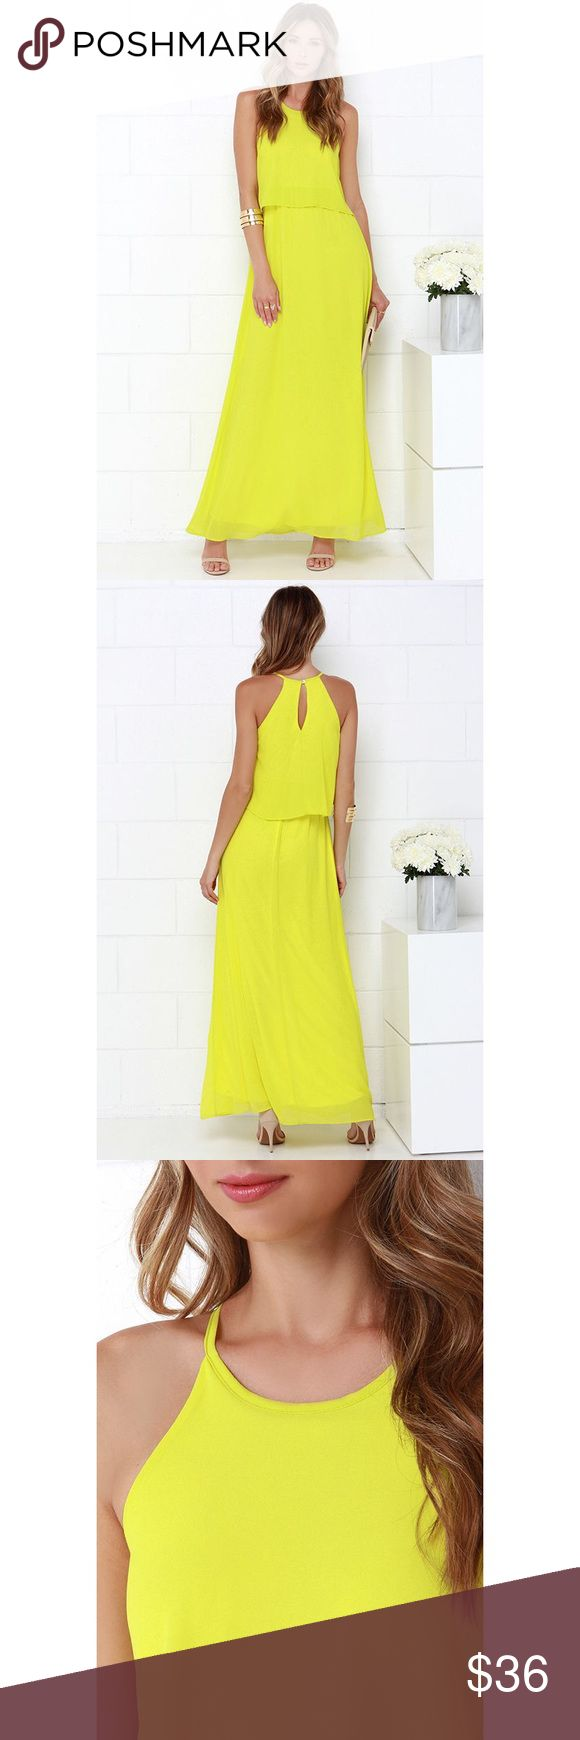 Dee Elle Hue are Lovely Chartreuse Maxi Dress Your best look is yet to come, with a day or night spent in the Dee Elle Hue Are Lovely Chartreuse Maxi Dress! Woven poly Georgette forms a high, halter neckline and fluttering flounce that falls over the fitted waist of this stunning dress. The dreamy maxi skirt completes this elegant ensemble. Back keyhole has top button closure. Fully lined. 100% Polyester. Hand Wash Cold. Made with Love in the U.S.A. Lulu's Dresses Maxi